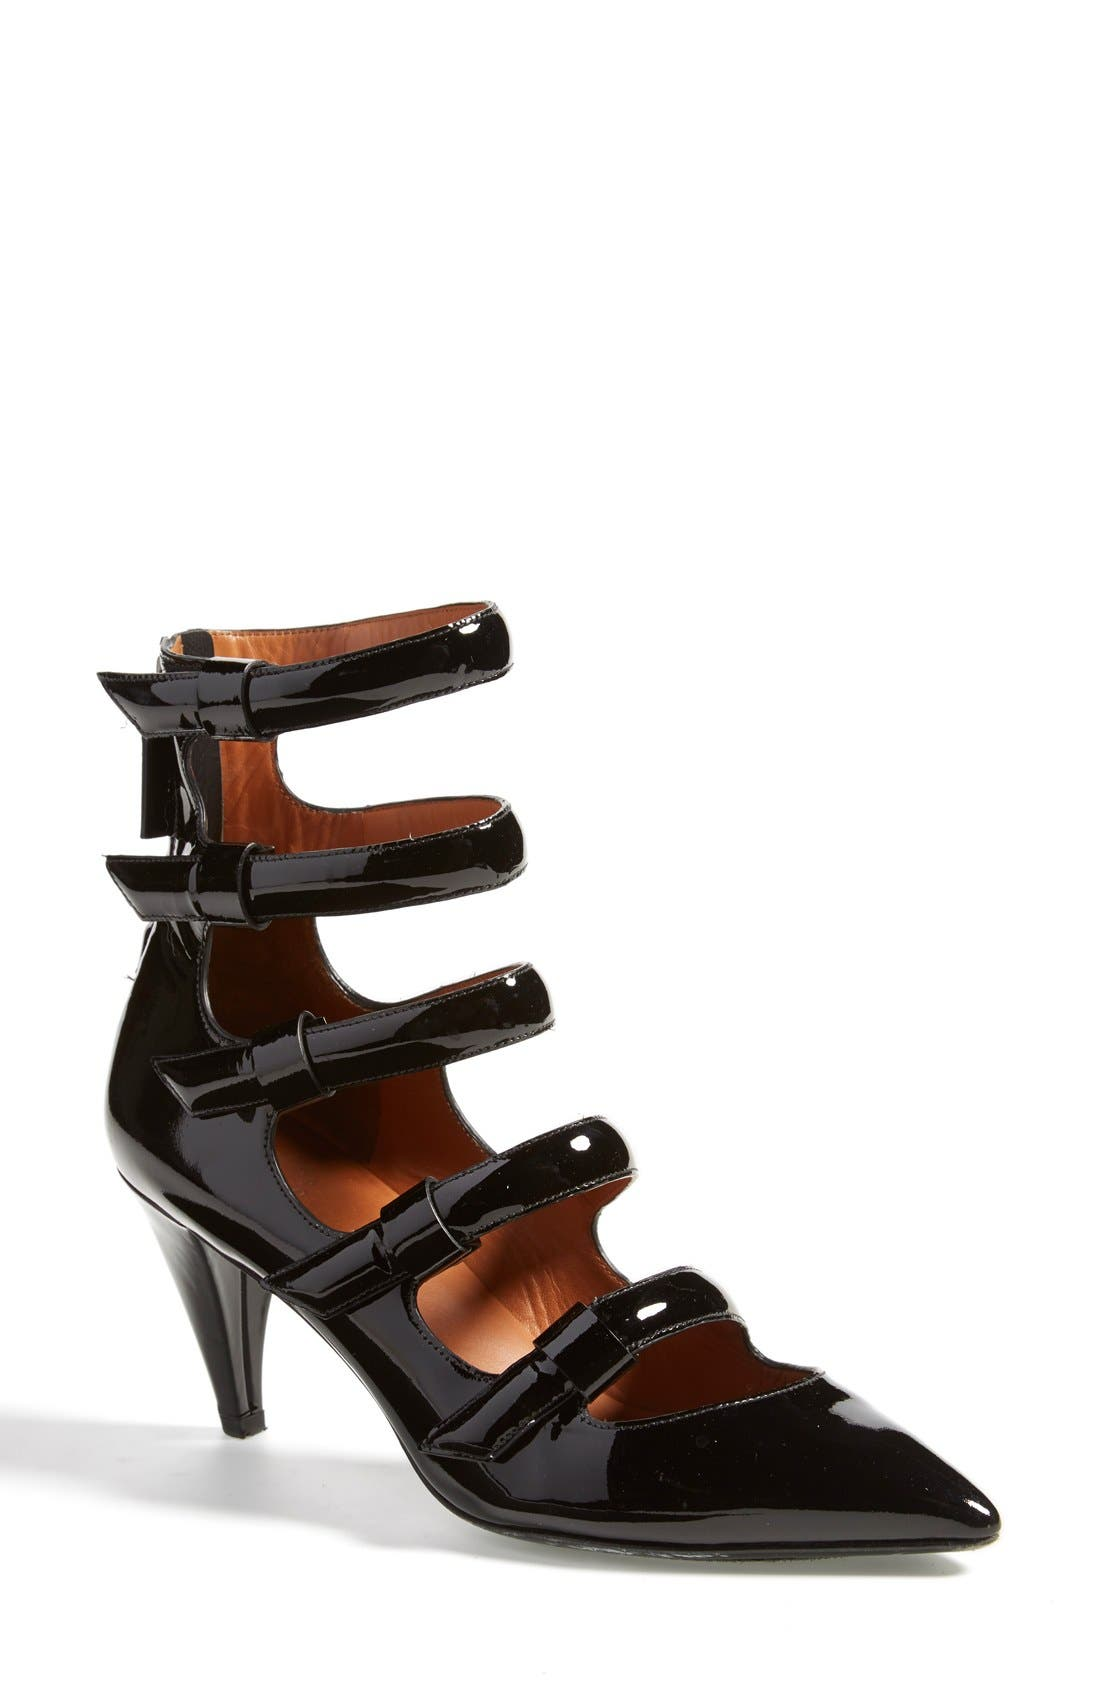 MARC JACOBS, MARC BY MARC JACOBS 'Runway' Pump, Main thumbnail 1, color, 001